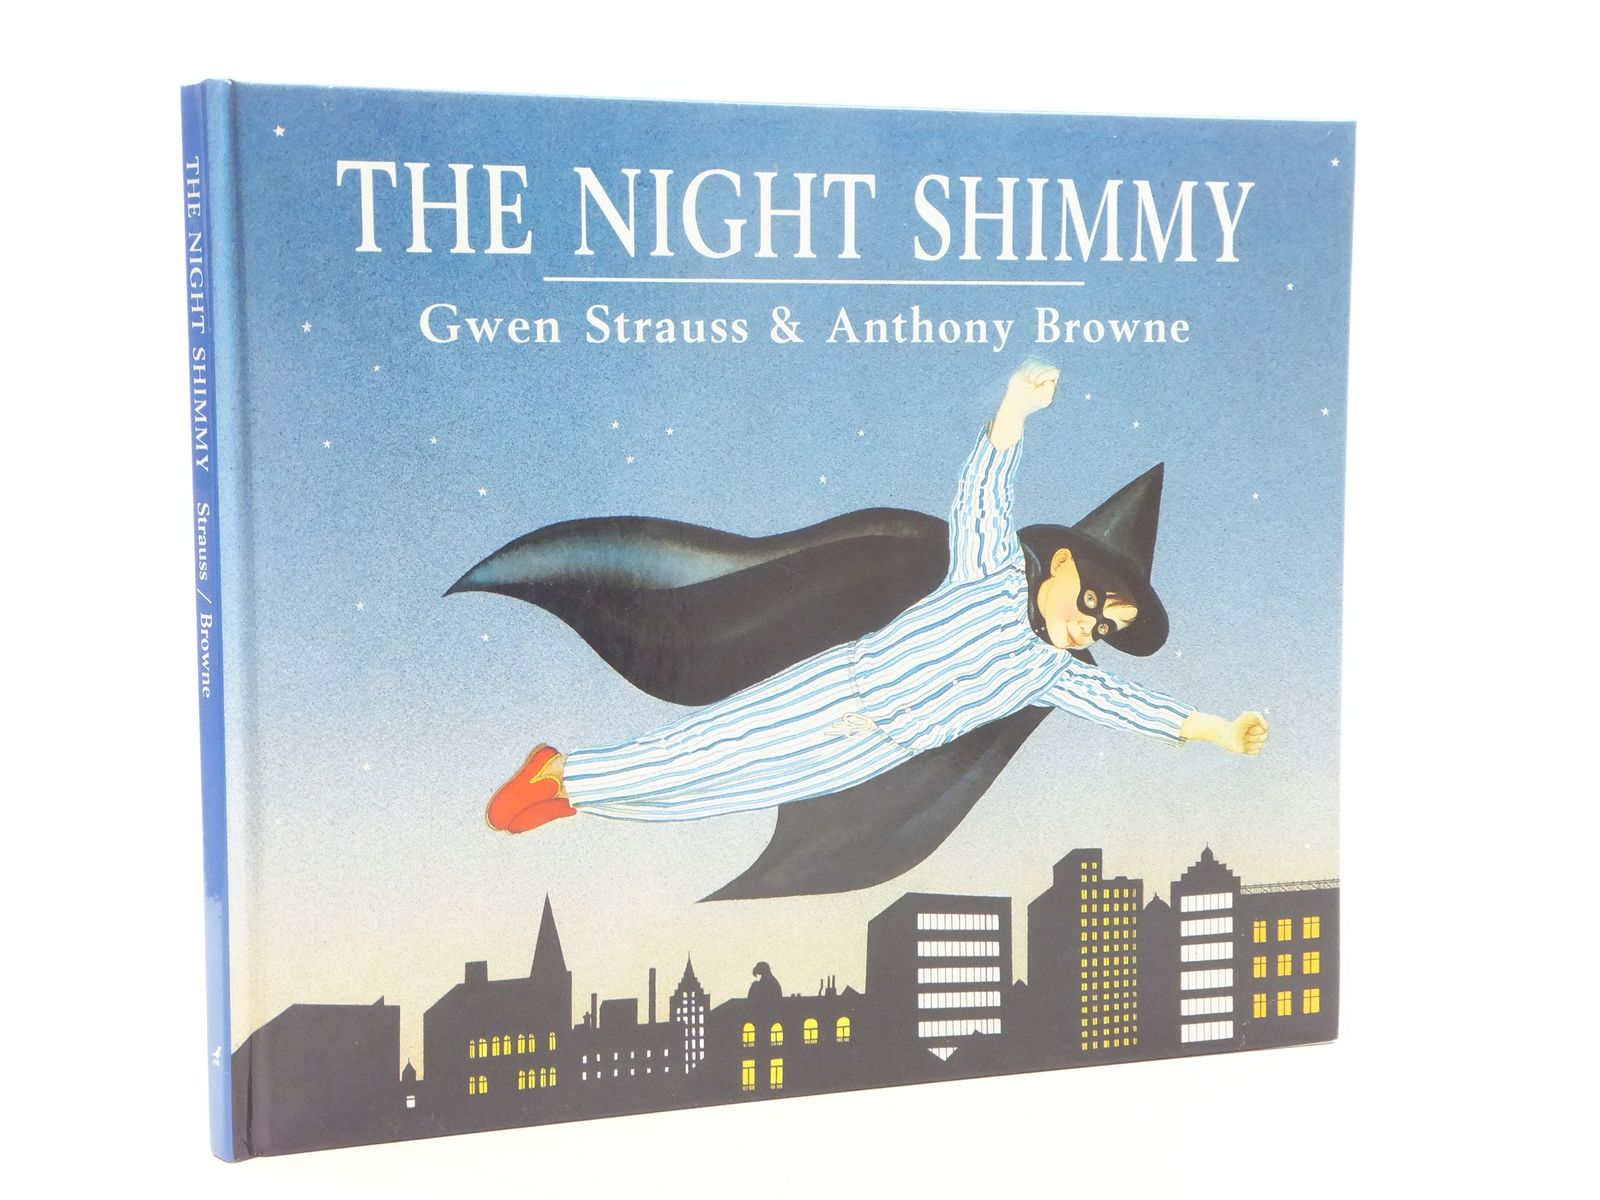 Photo of THE NIGHT SHIMMY written by Strauss, Gwen illustrated by Browne, Anthony published by Julia MacRae Books (STOCK CODE: 1208012)  for sale by Stella & Rose's Books